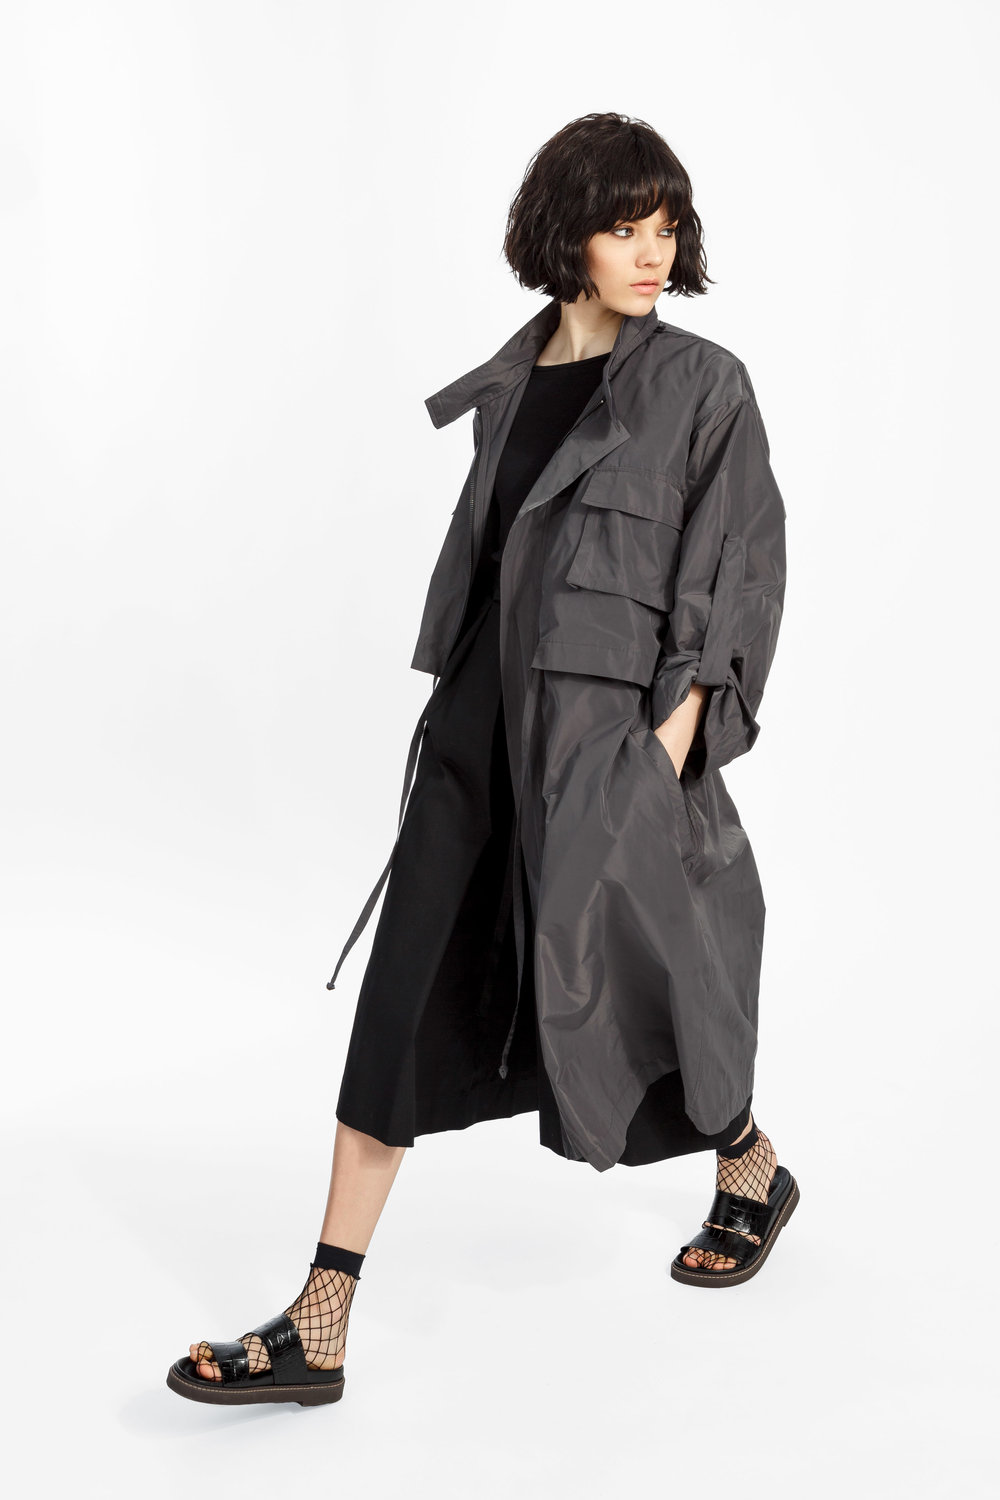 Aiden - ....Two-layered, full length trench coatShop ..Trench composé de deux couchesMagasiner....